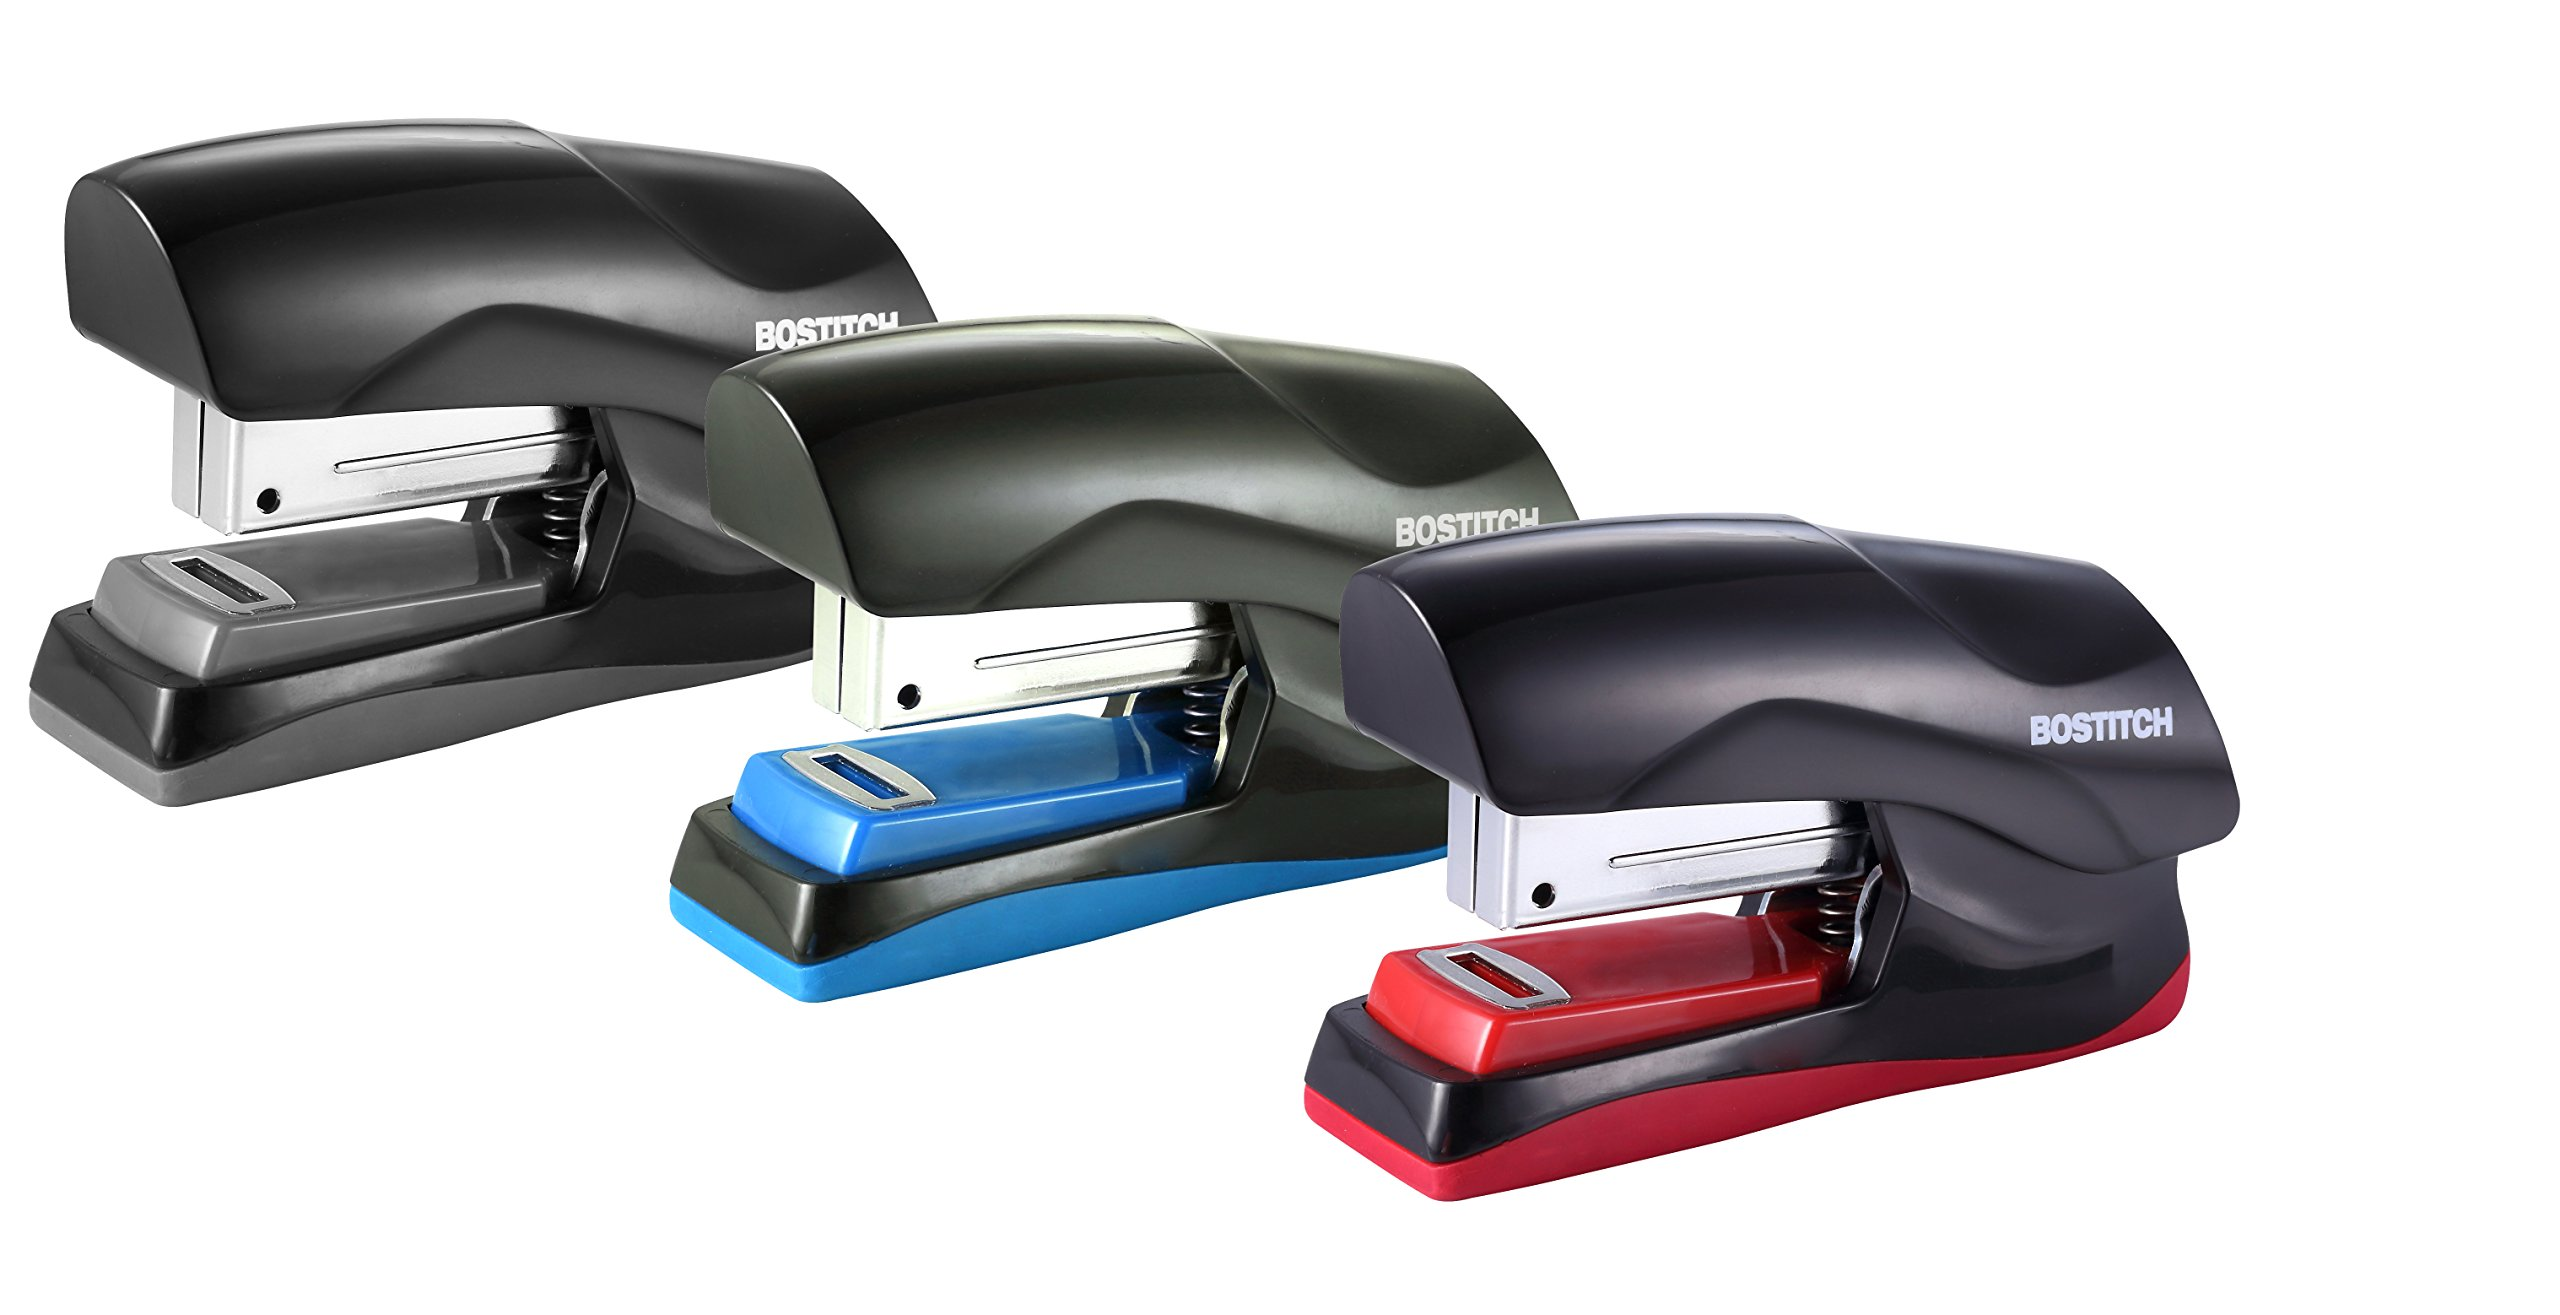 Bostitch Office Heavy Duty 40 Sheet Stapler, Small Stapler Size, Fits into The Palm of Your Hand; Assorted - No Color Choice, One per Order (B175-ASST)